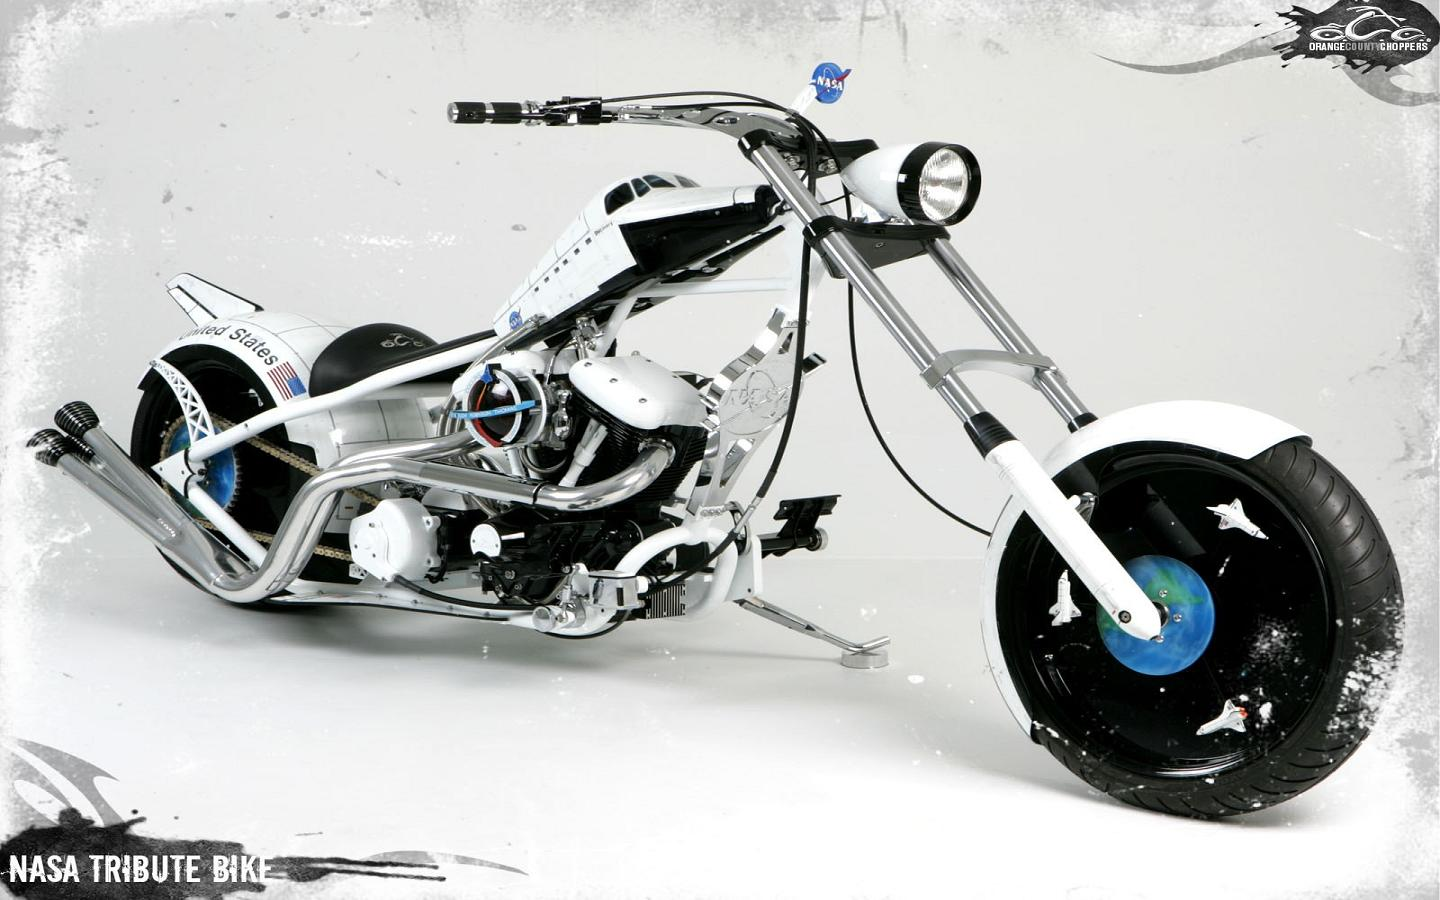 space shuttle bike occ - photo #33